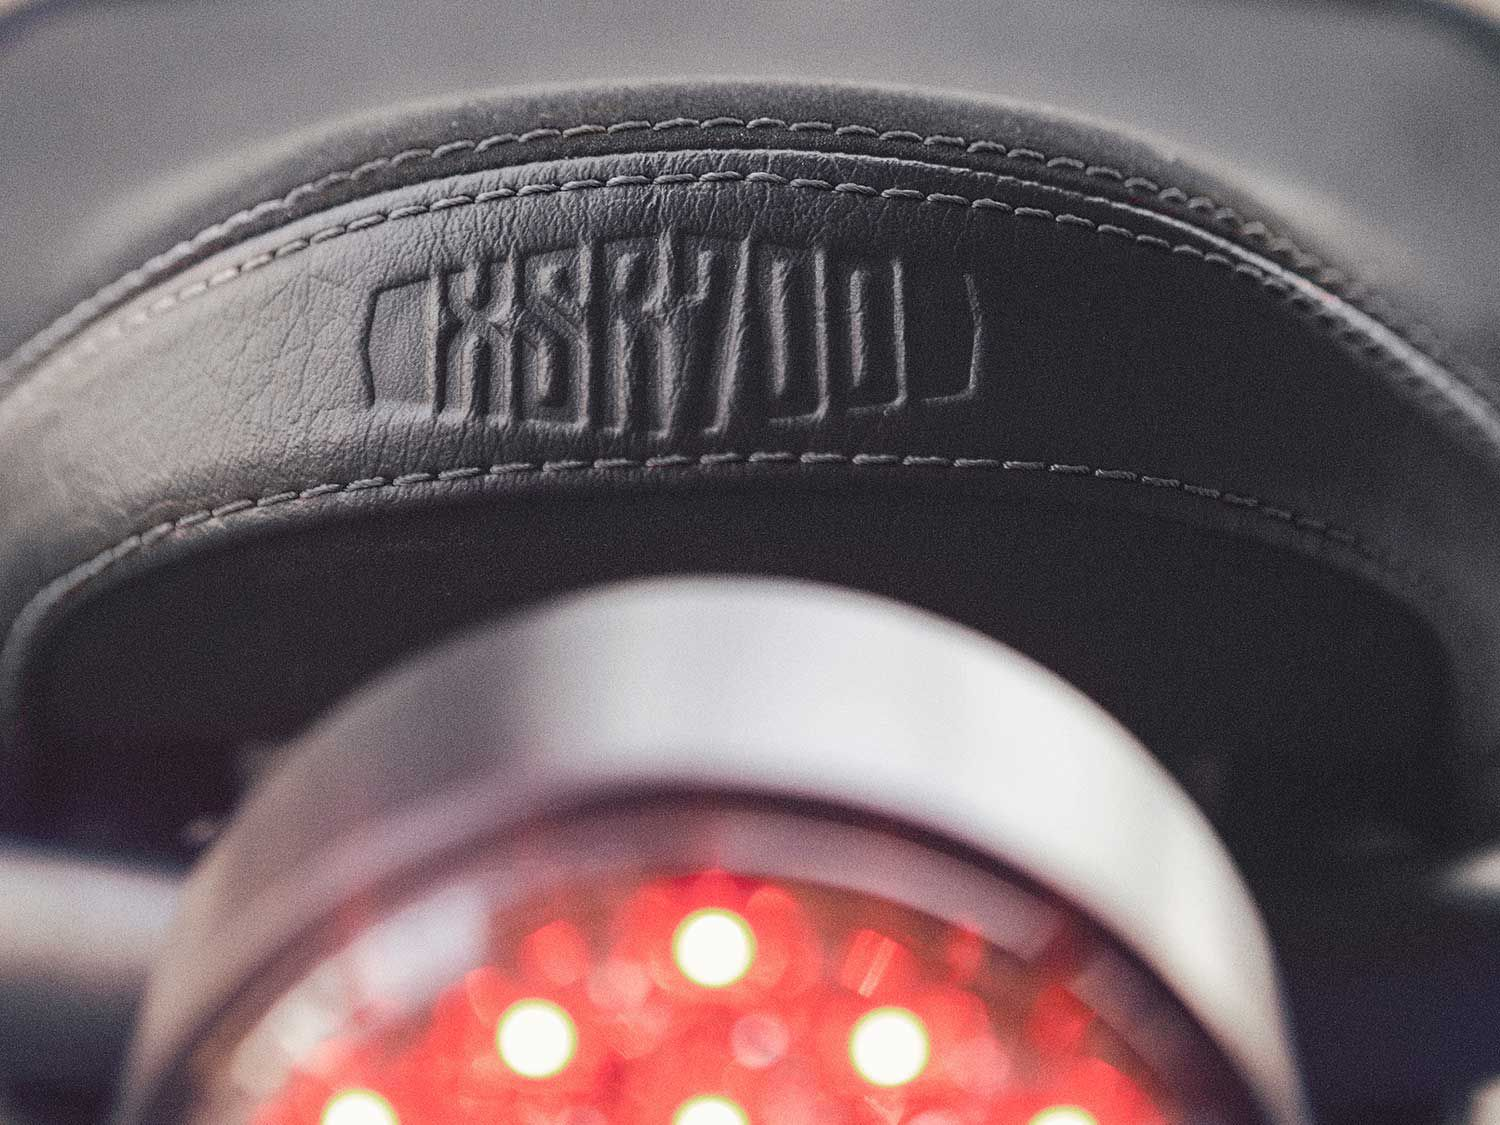 The classic round Yamaha taillight is all LED. Tasteful XSR700 logos appear throughout the bike.